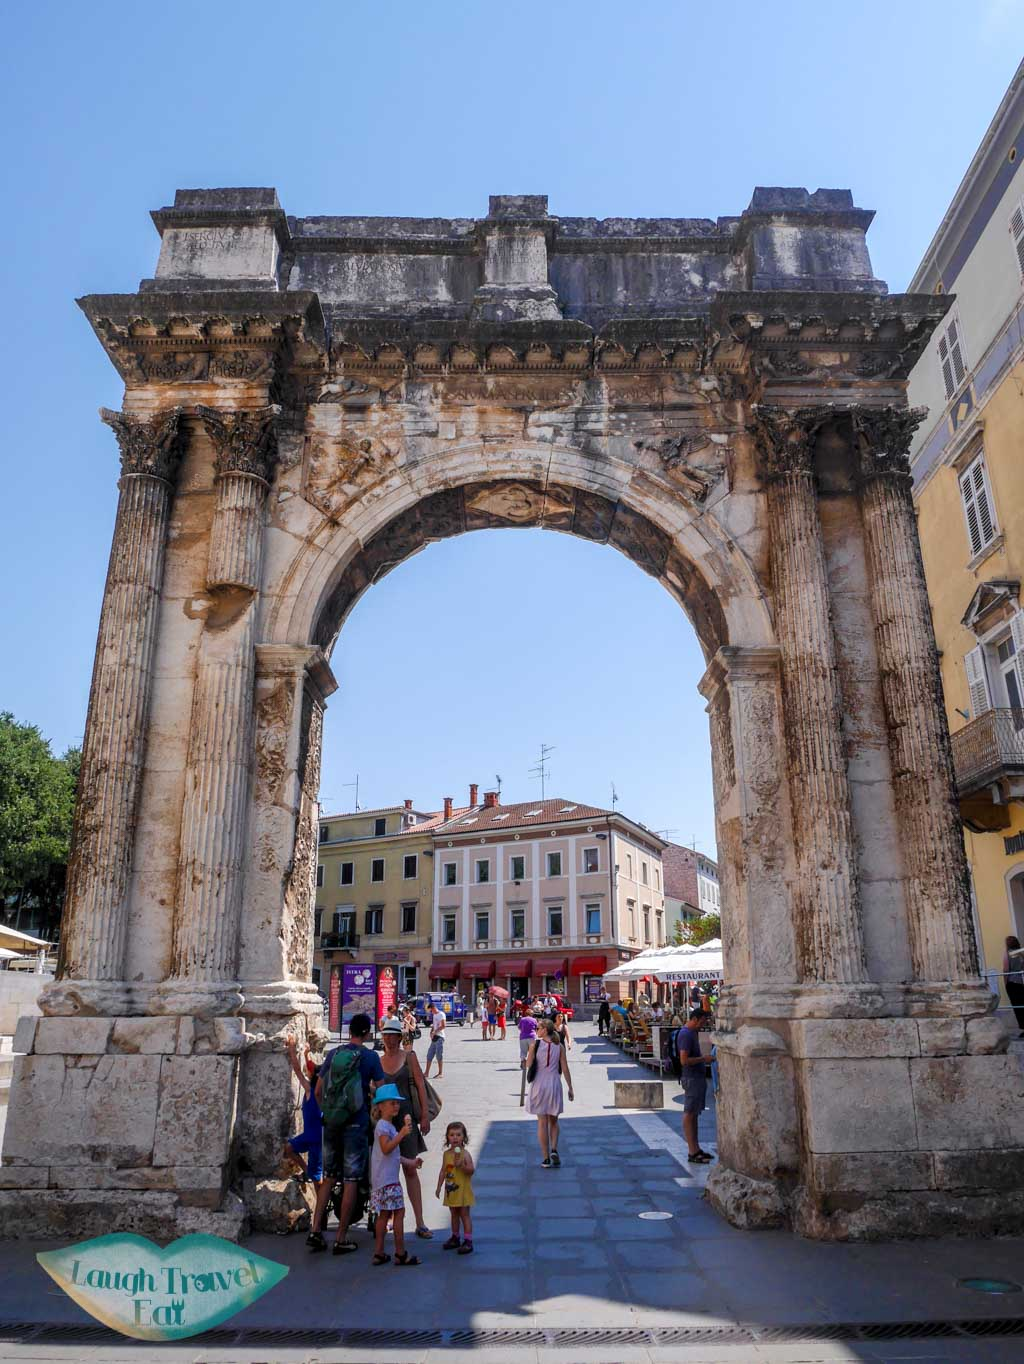 The-Triumphal-Arch-of-Sergius-Pula-Croatia-Laugh-Travel-Eat